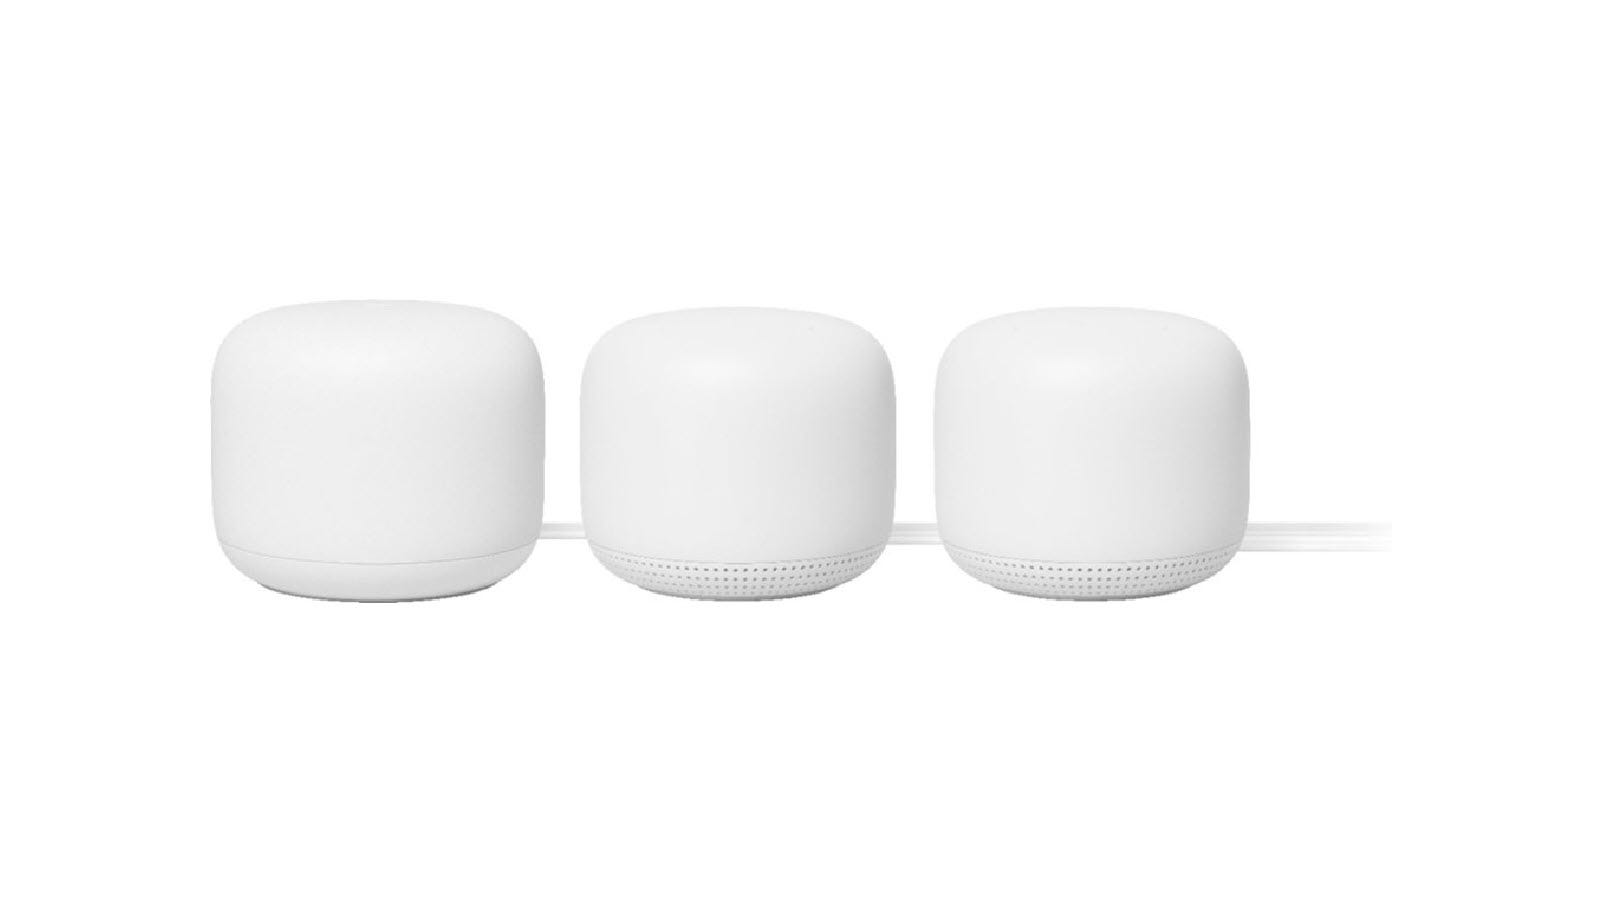 Three Nest WIFI access ponts in a row.